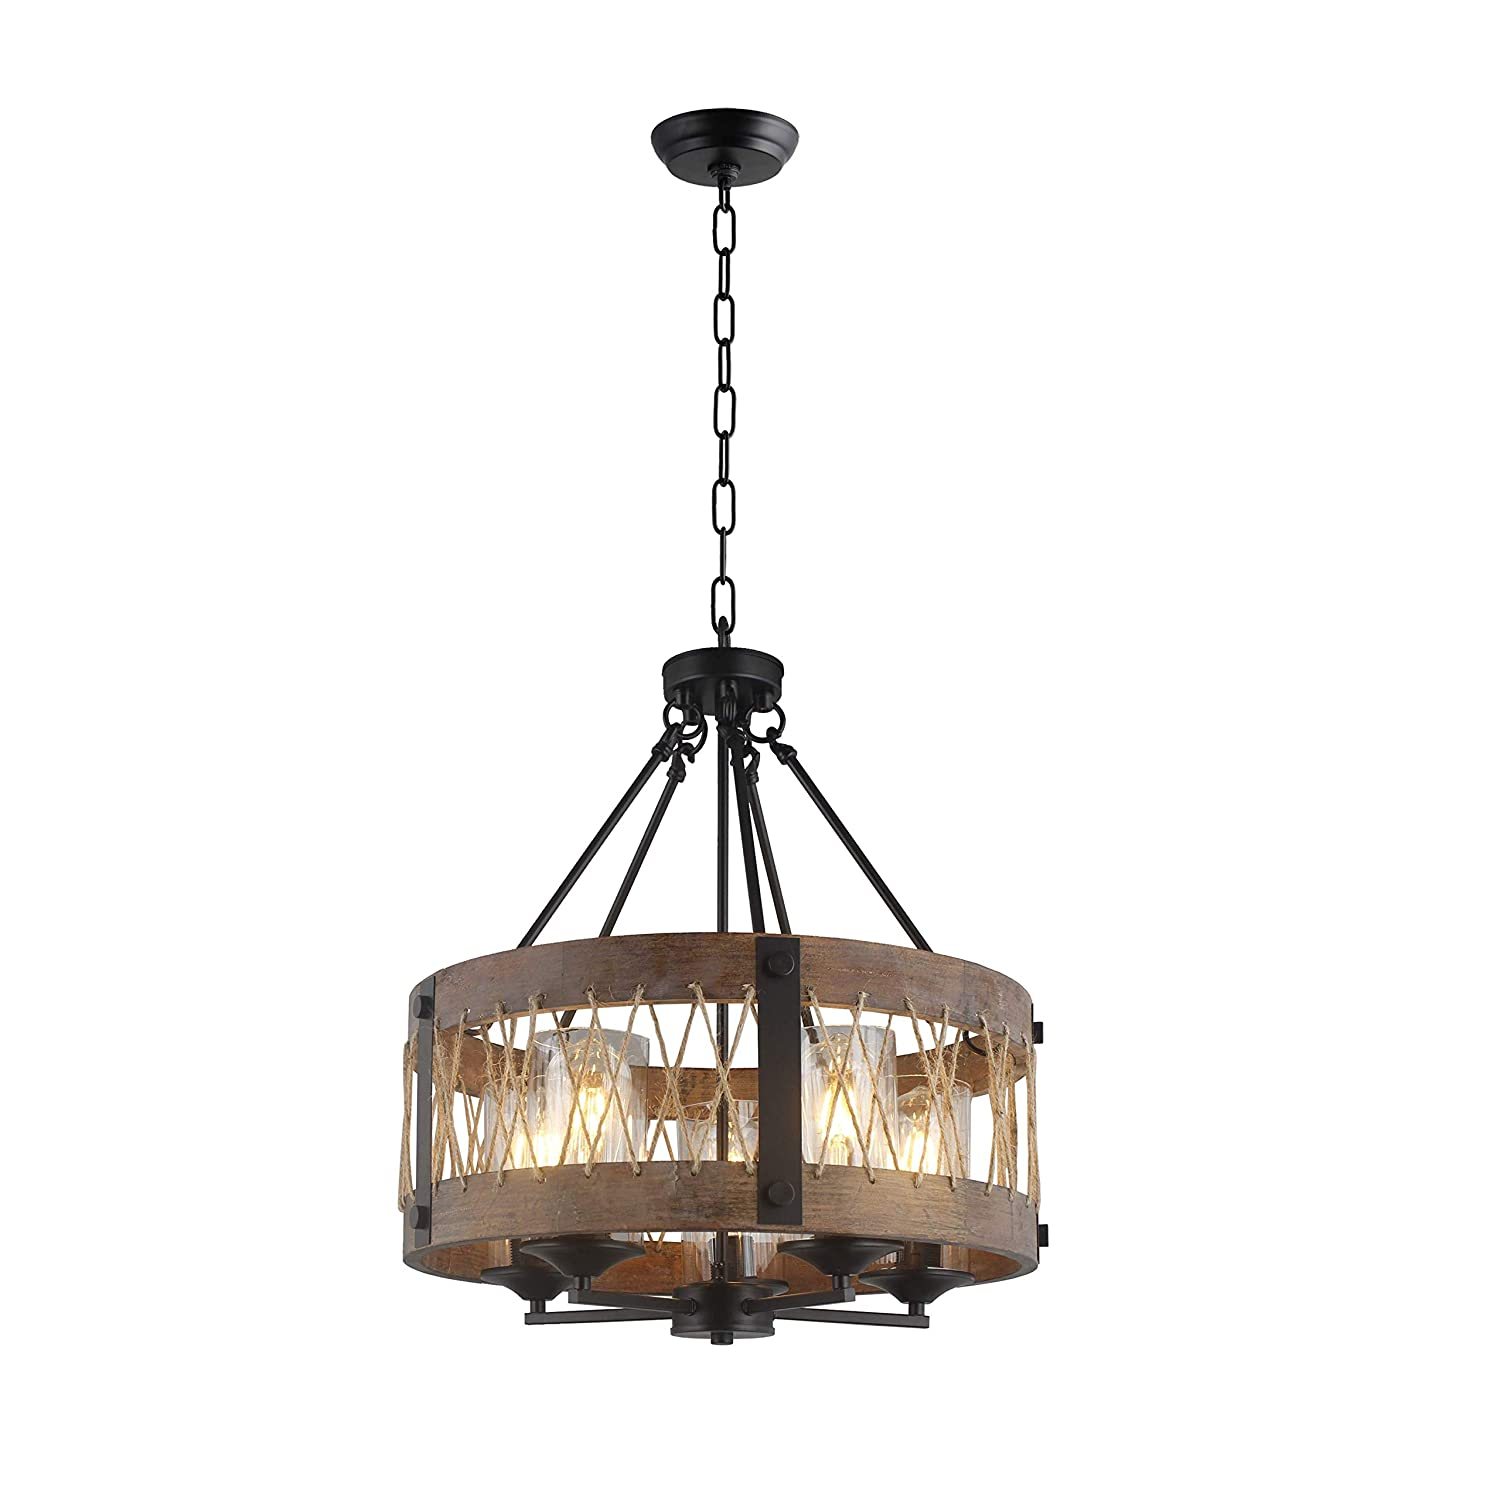 20 Width X 21 Height Wood Wooden Shade Ceiling Light Fixture Pendant Retro Industrial French Country Vintage Antique Chandelier Restaurant Bar Pendant Lamp Nostalgic Cafe